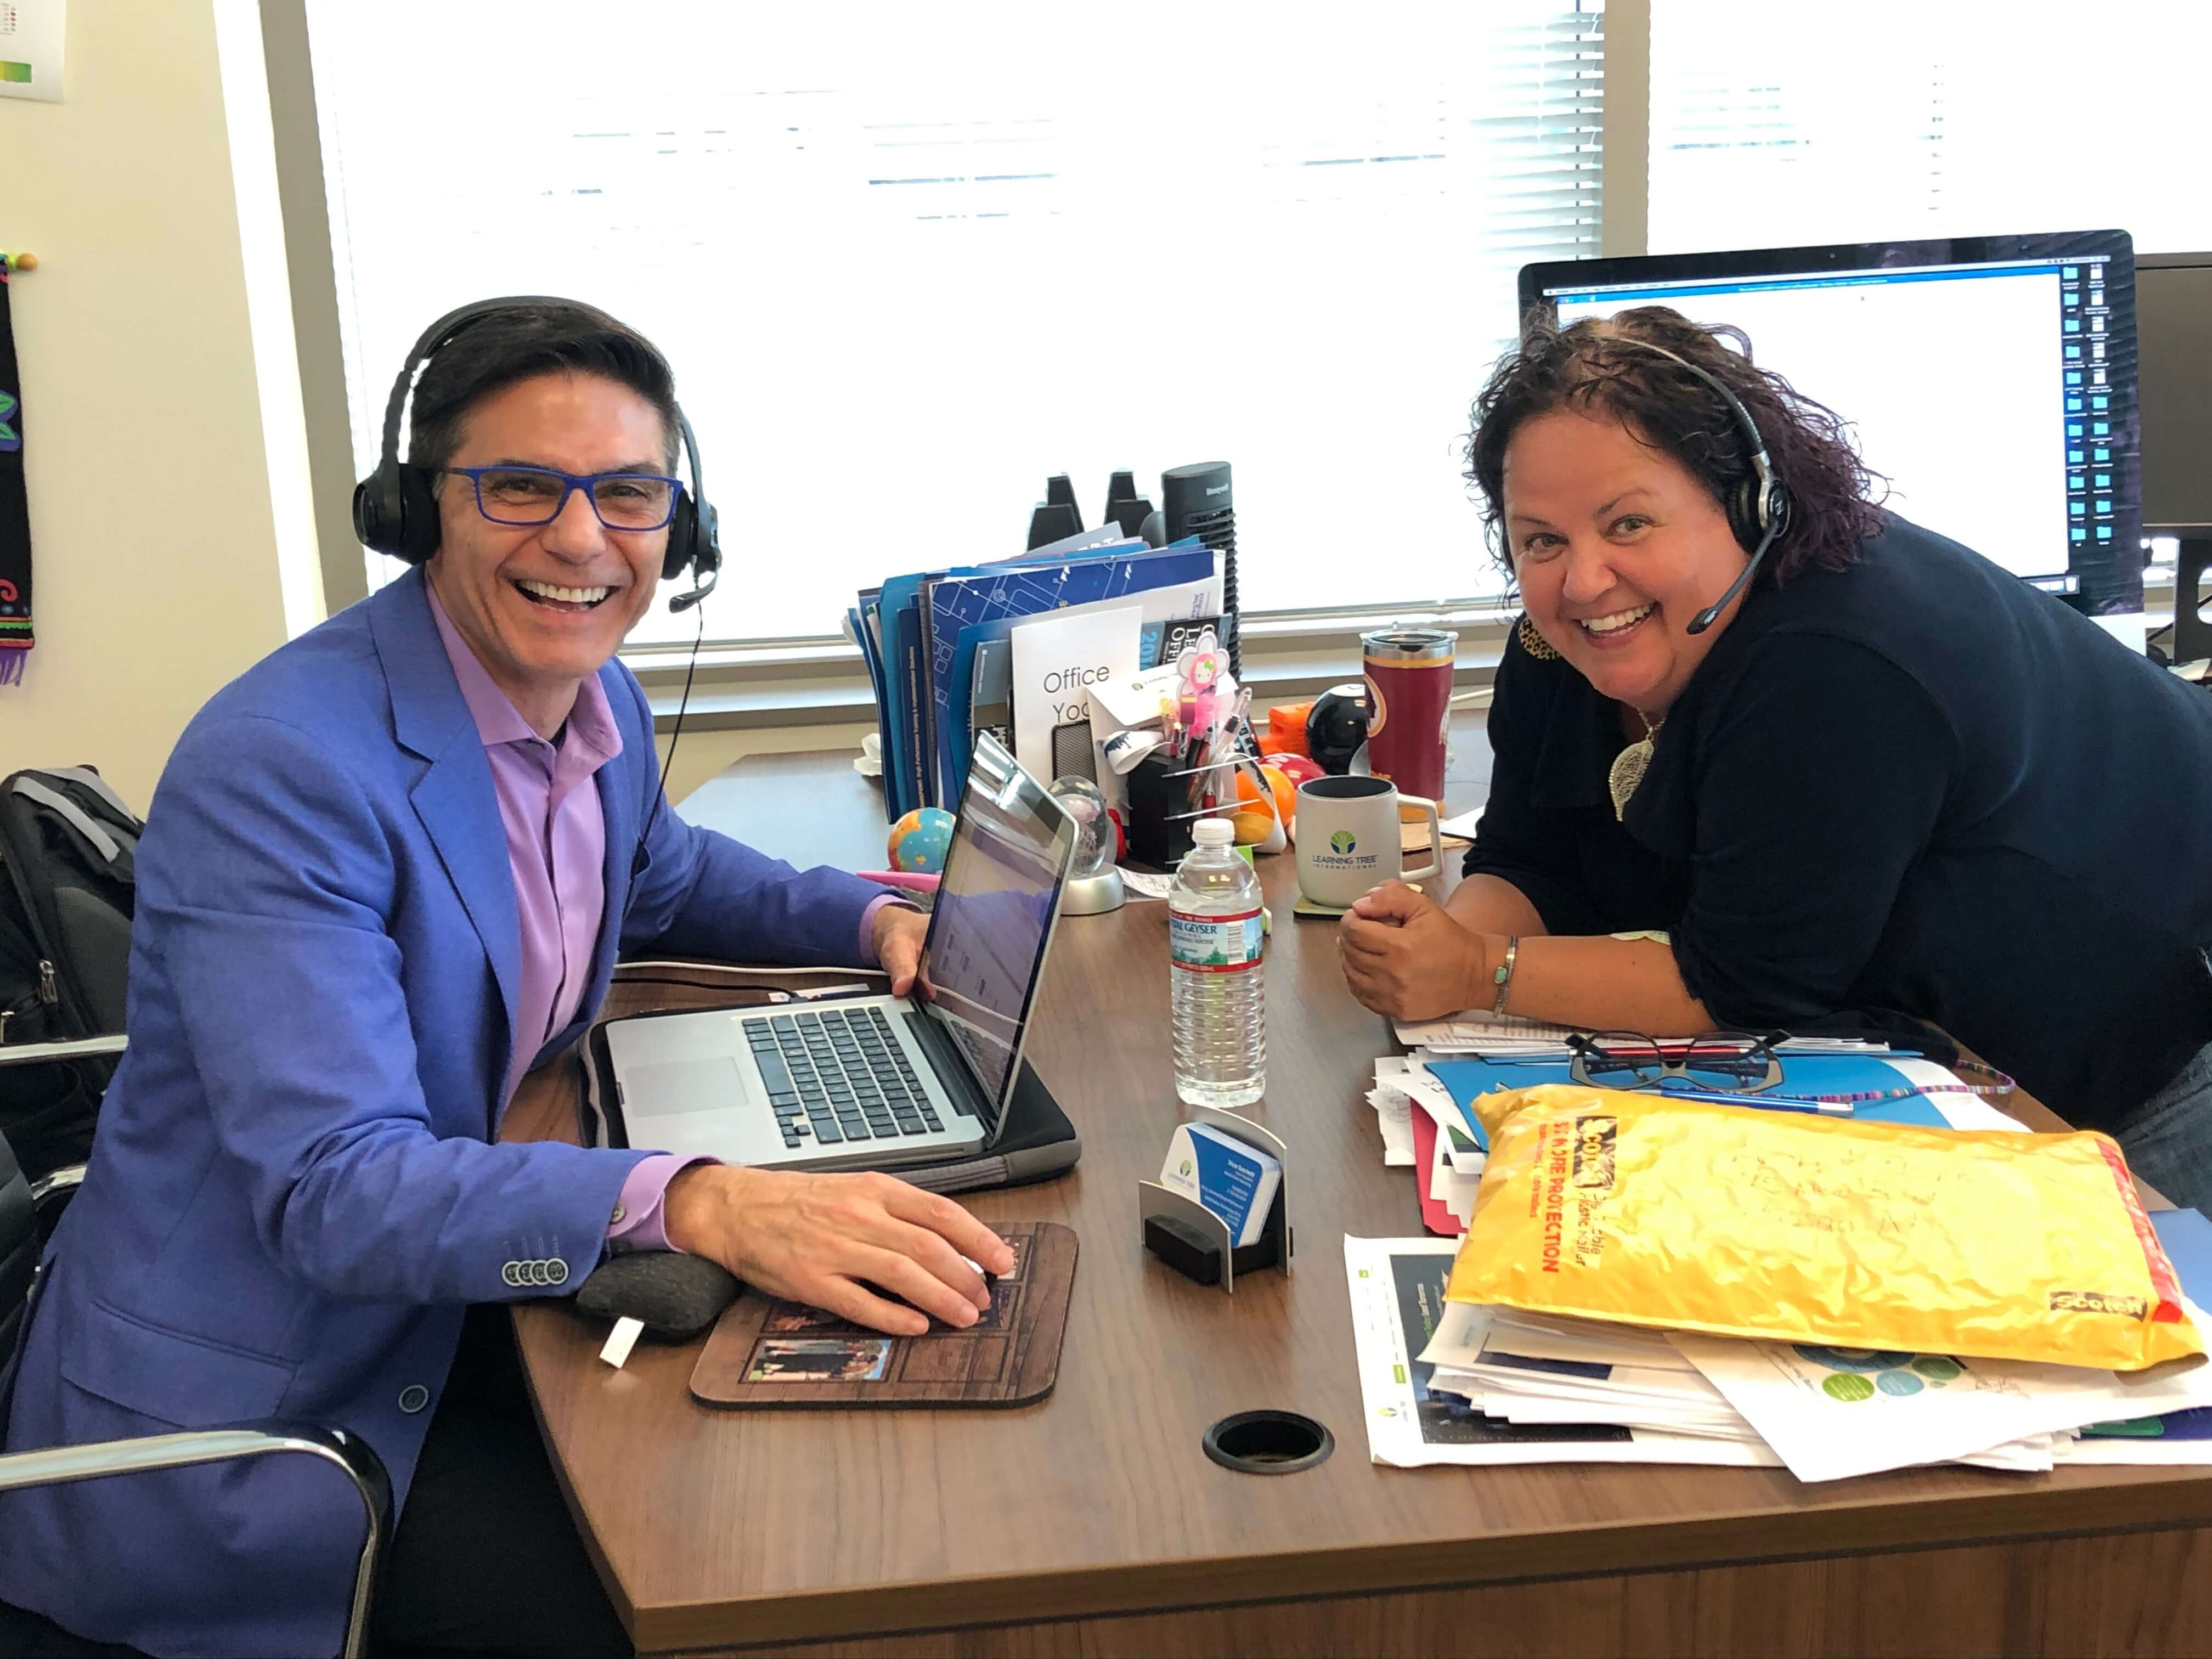 Behind the scene of the Modern Marketing Engine Podcast episode with Tricia Sacchetti and Bernie Borges - women in marketing